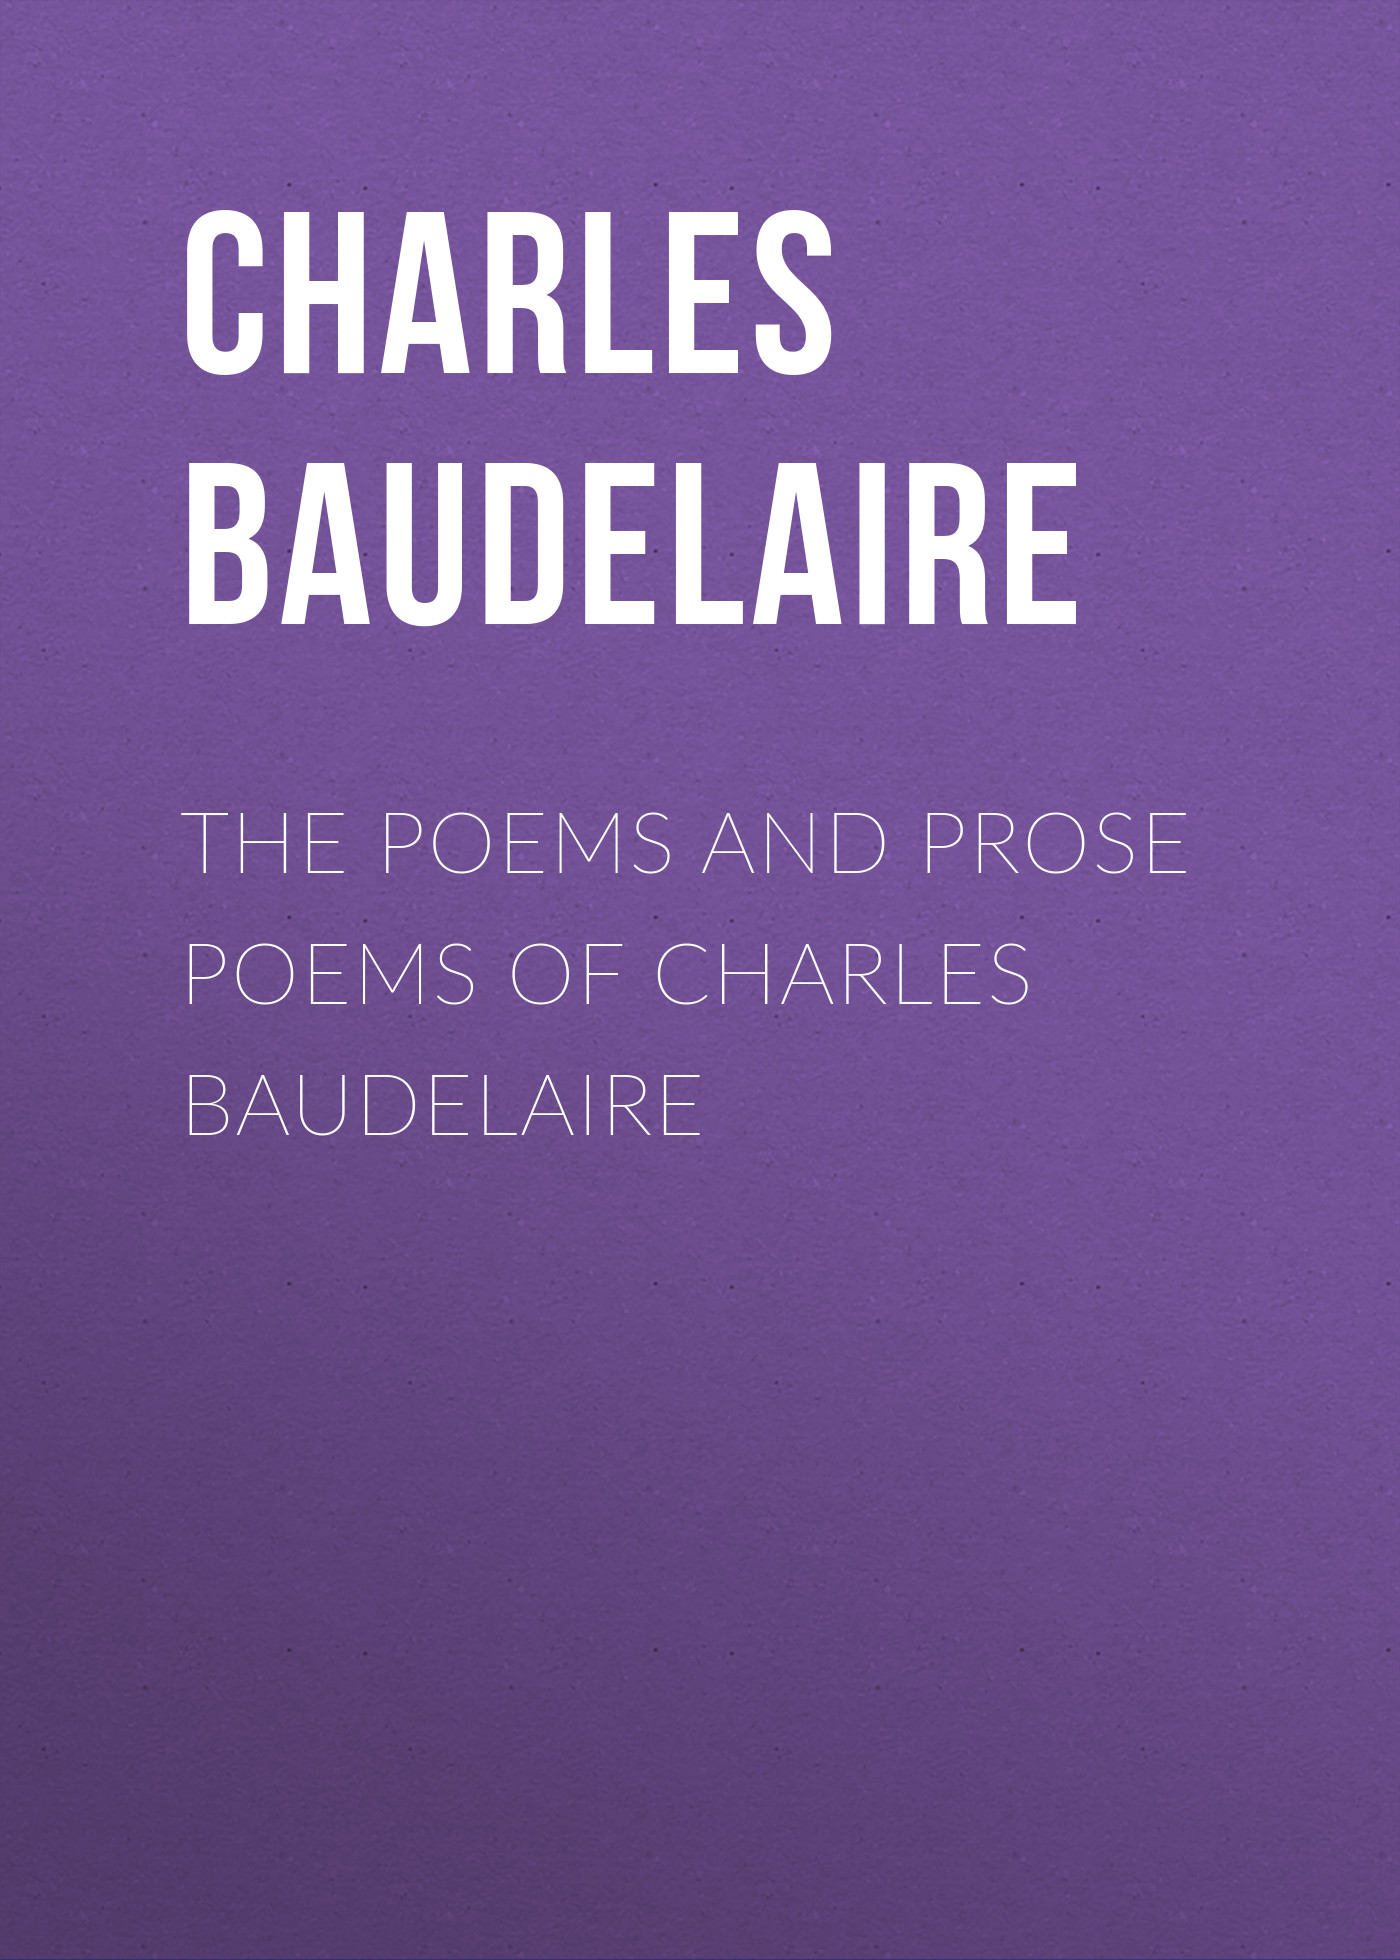 Baudelaire Charles The Poems and Prose Poems of Charles Baudelaire ralph lauren polo red white